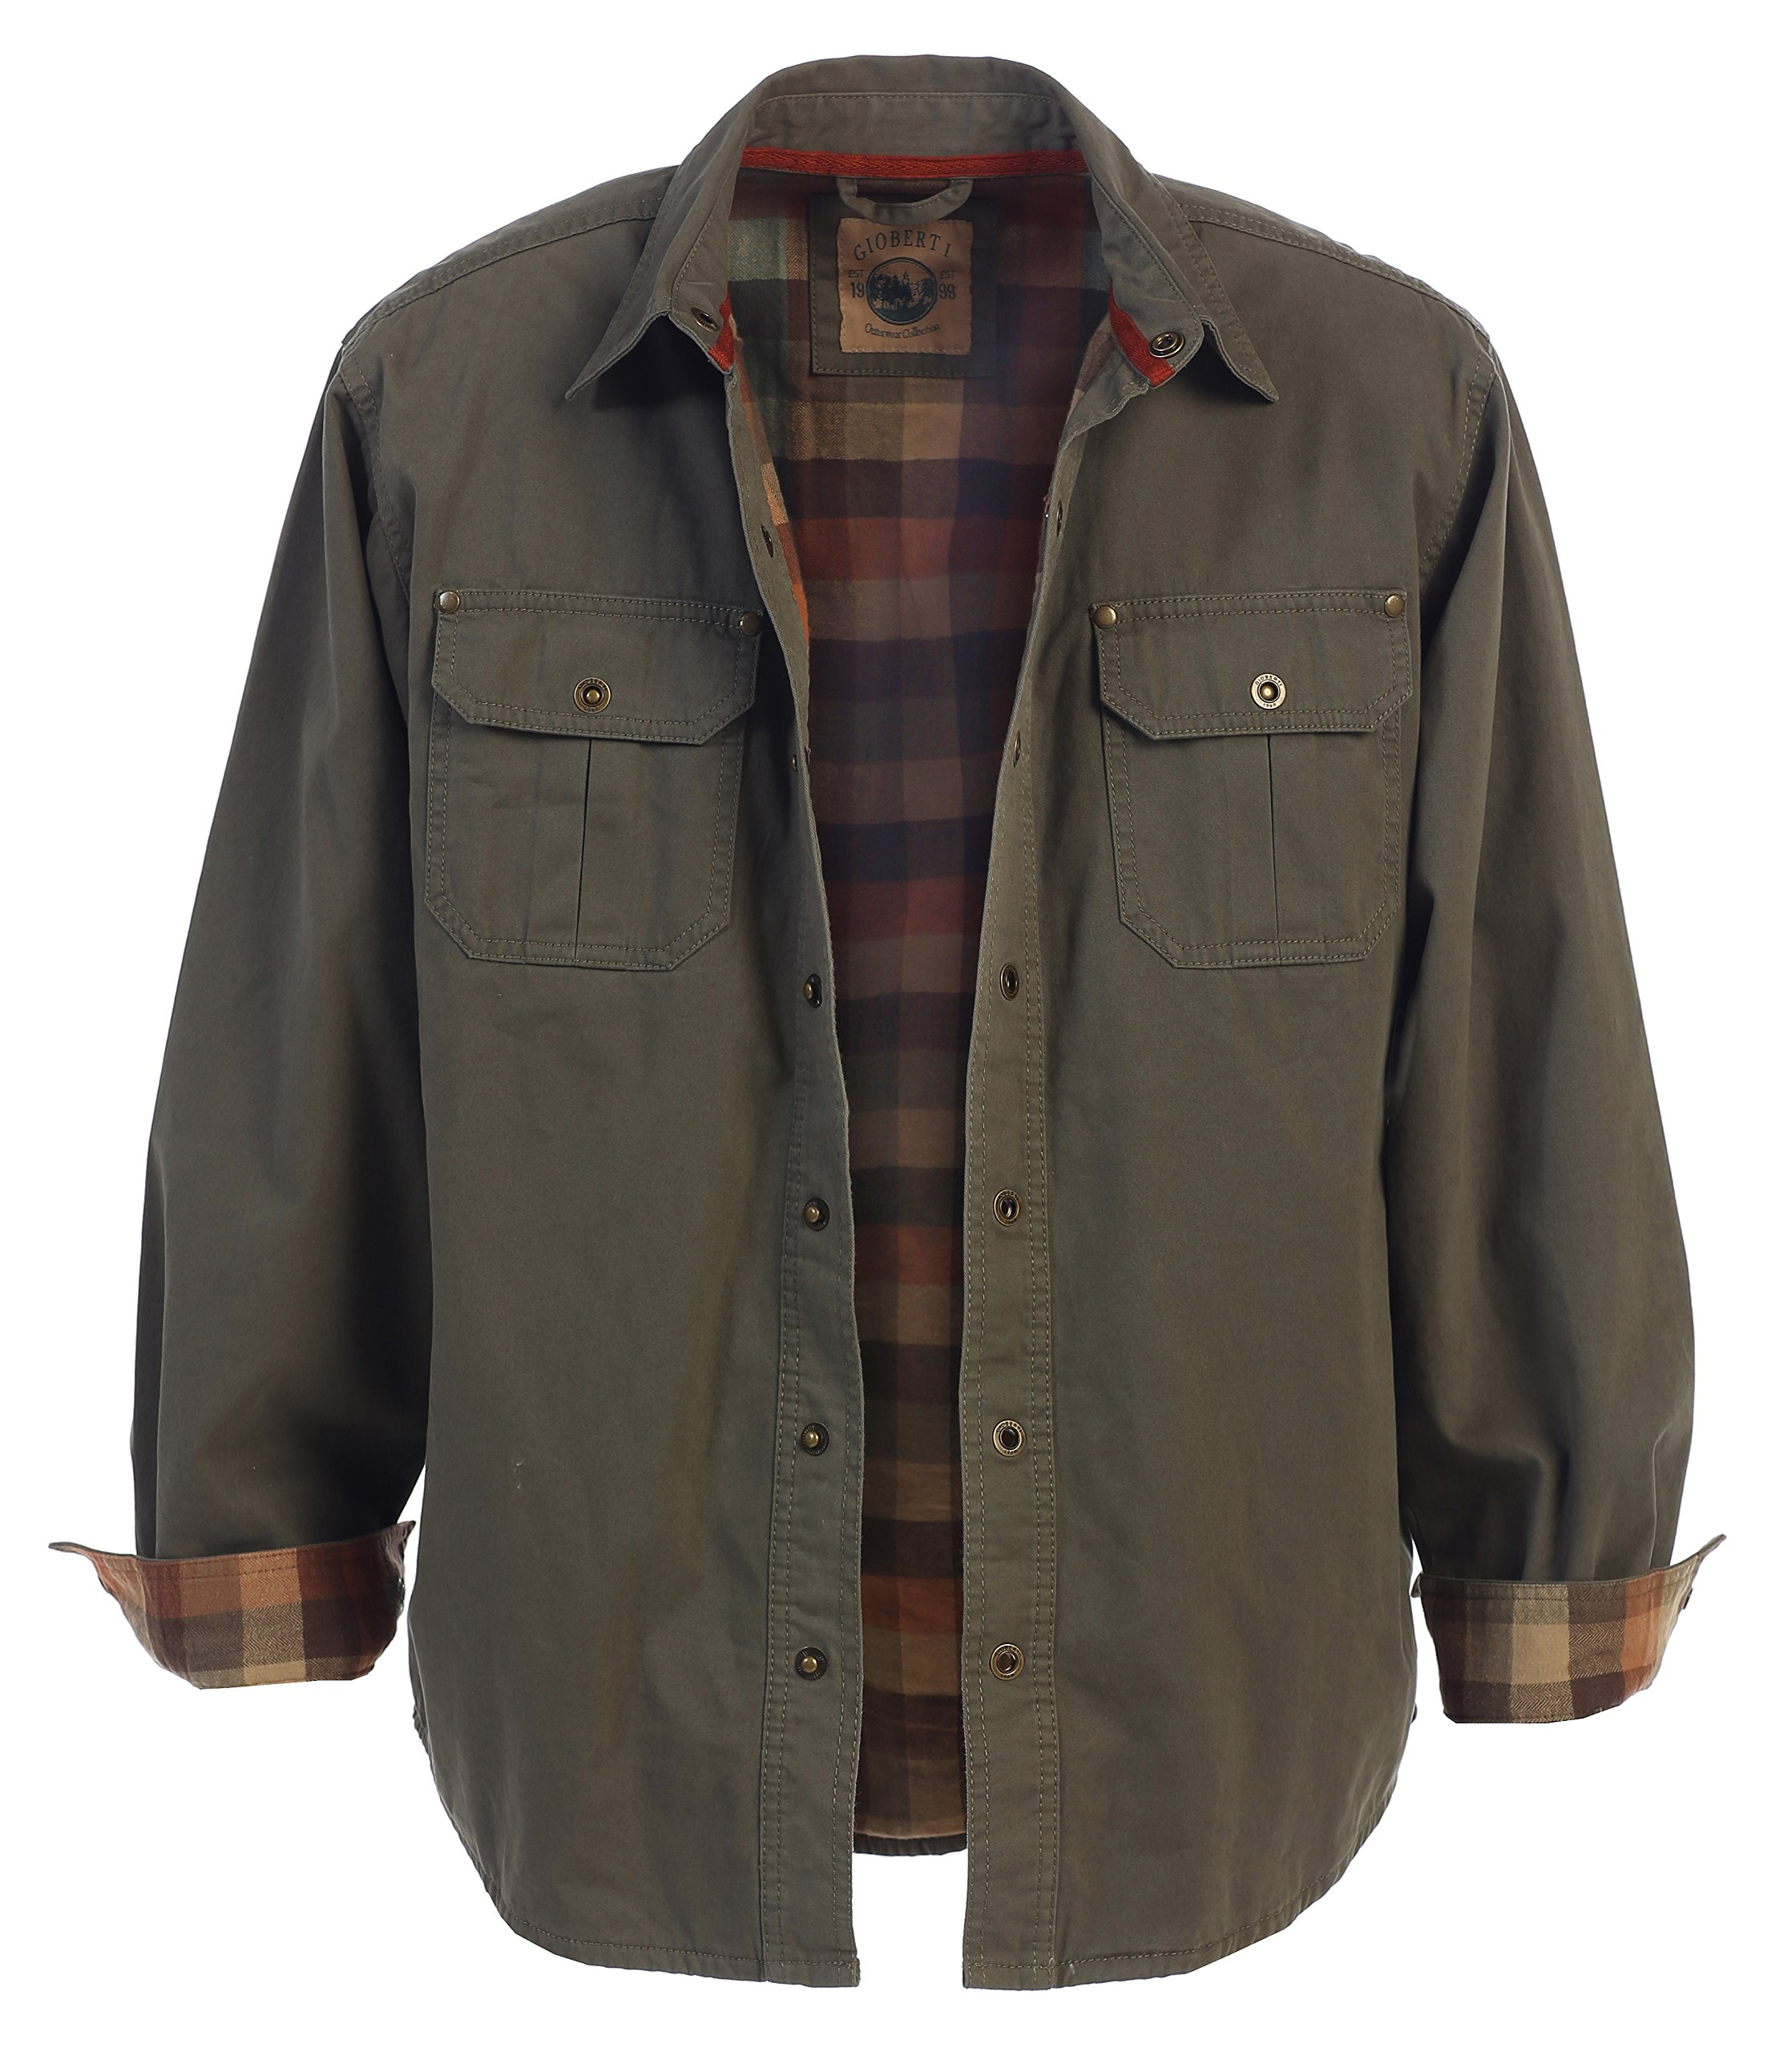 Gioberti Men's Brushed and Soft Twill Shirt Jacket with Flannel Lining, Olive, L by Gioberti